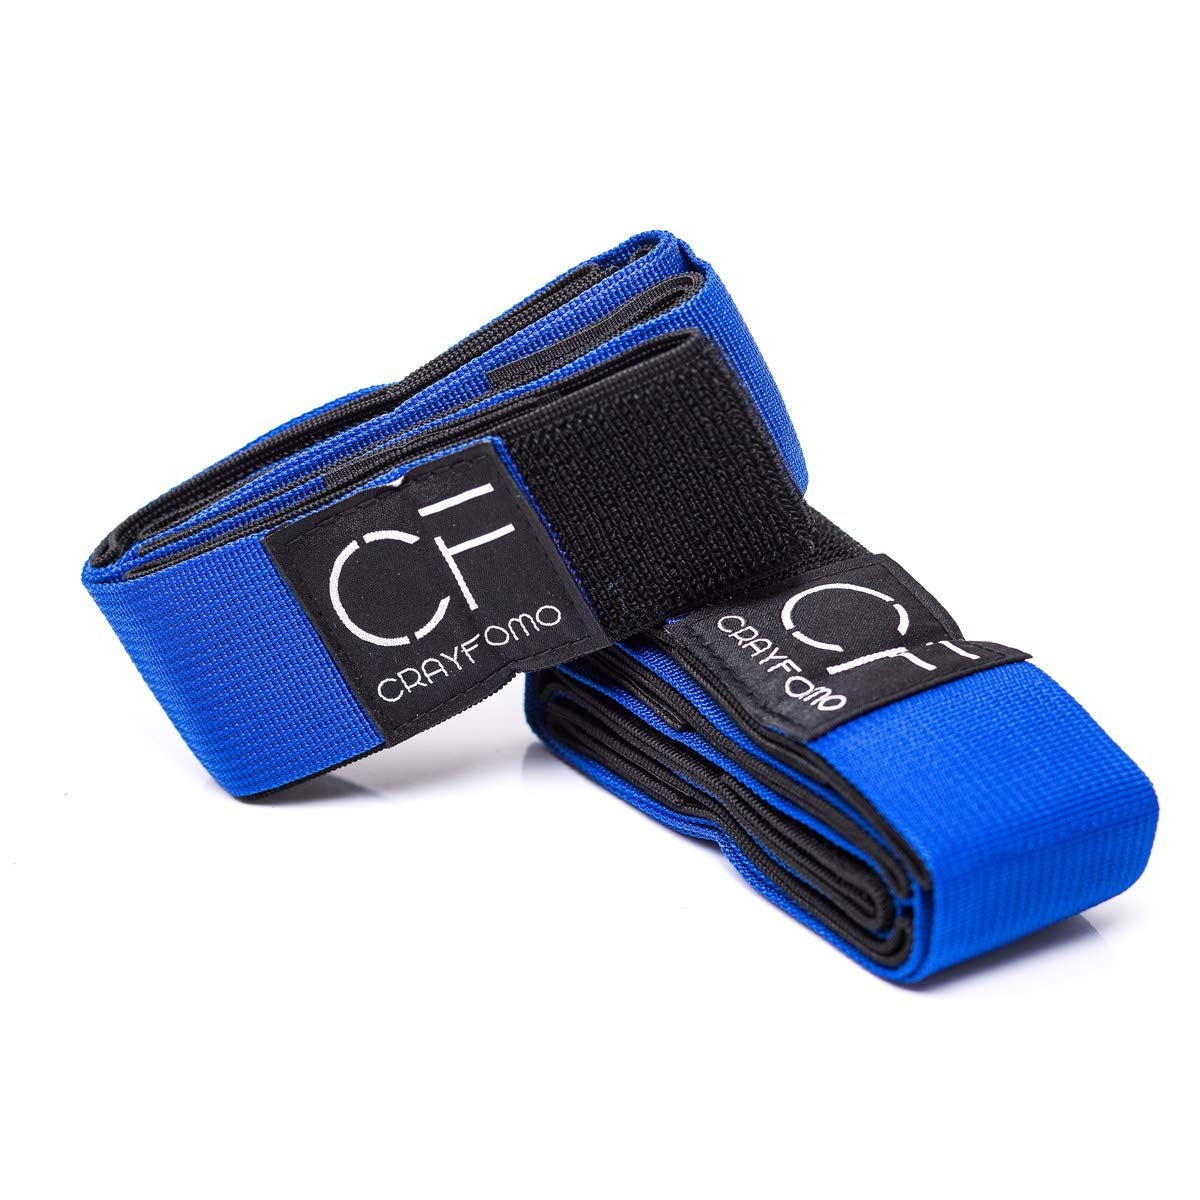 crayfomo 4 Legged Race Bands Outdoor Game for Kids Adults Birthday Team Party Games with Carry Bag (Blue)